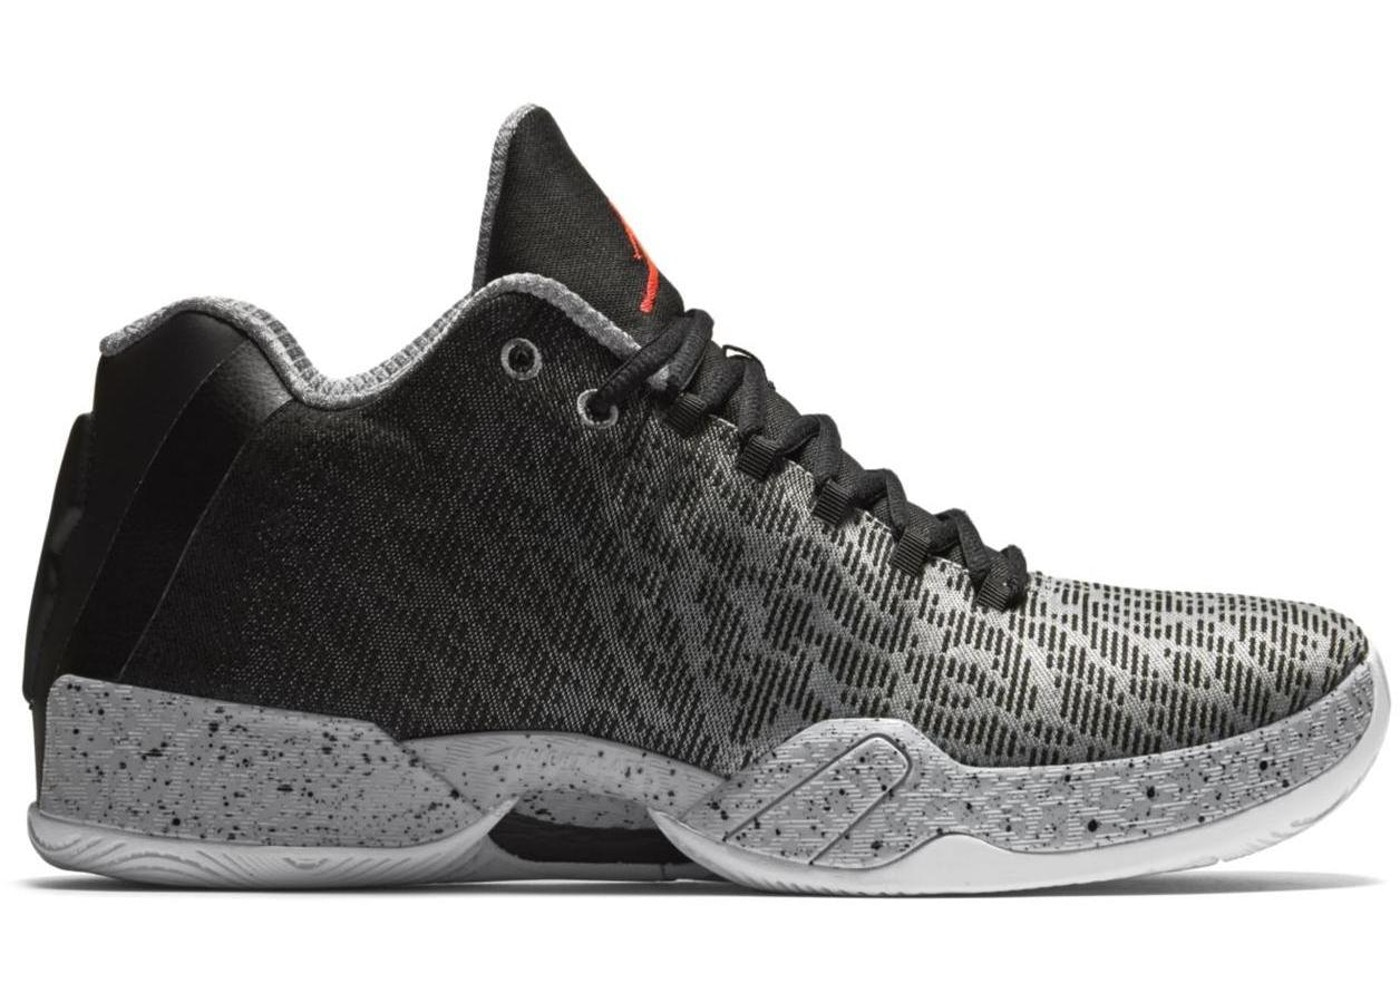 ba54774bb490 Jordan XX9 Low Infrared 23 - 828051-003